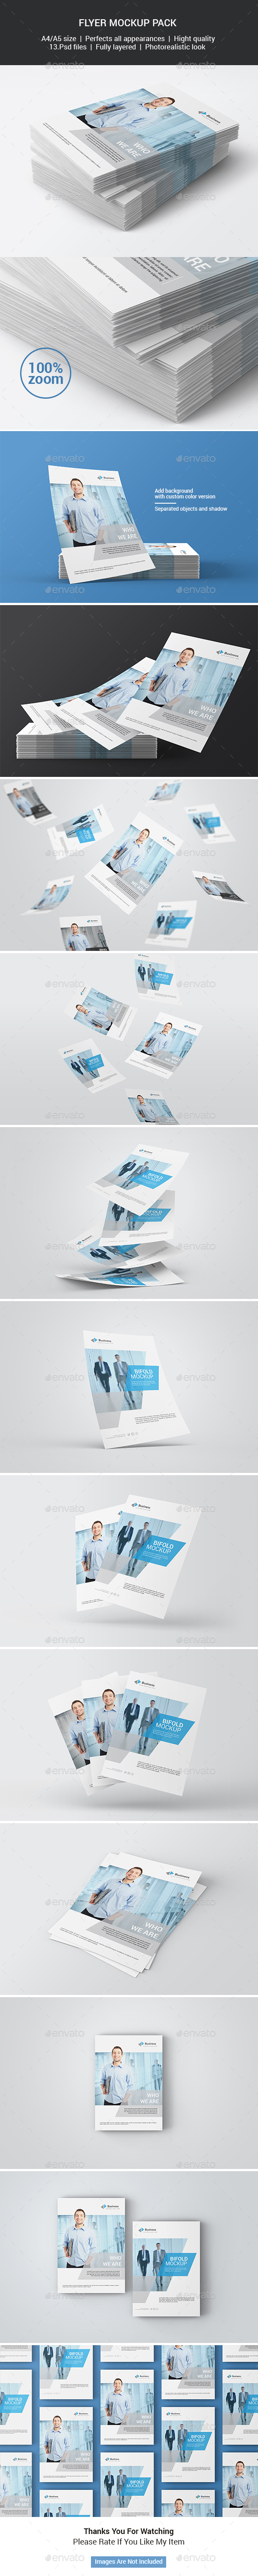 A4 / A5 Flyer Mockup Pack - Print Product Mock-Ups